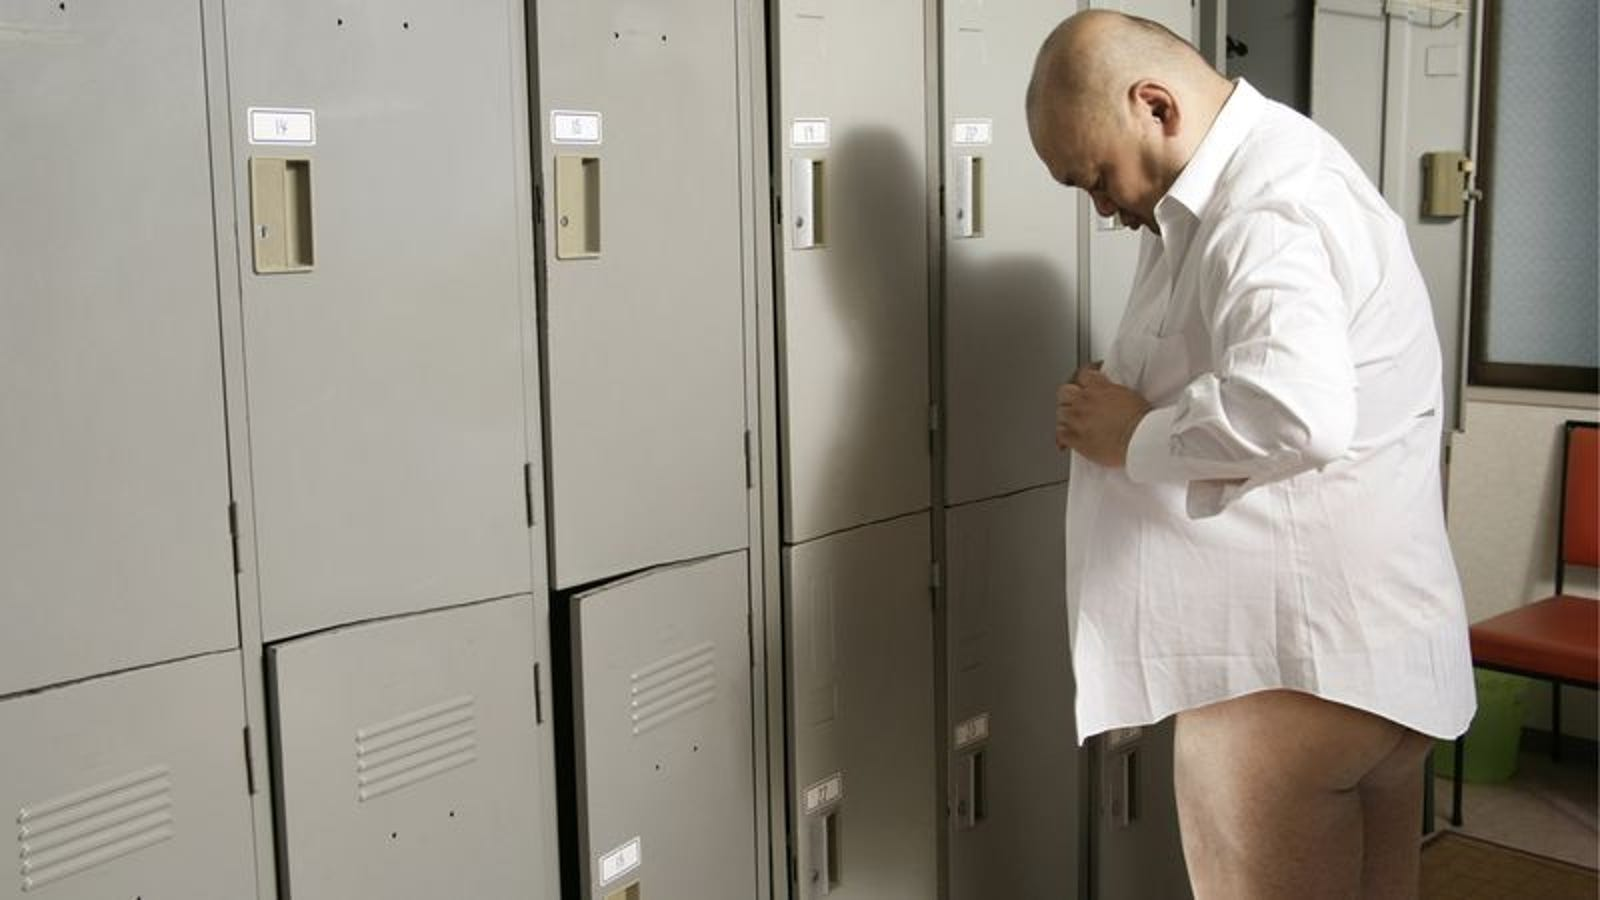 Middle-Aged Man In Gym Locker Room Puts Shirt On Before -1948